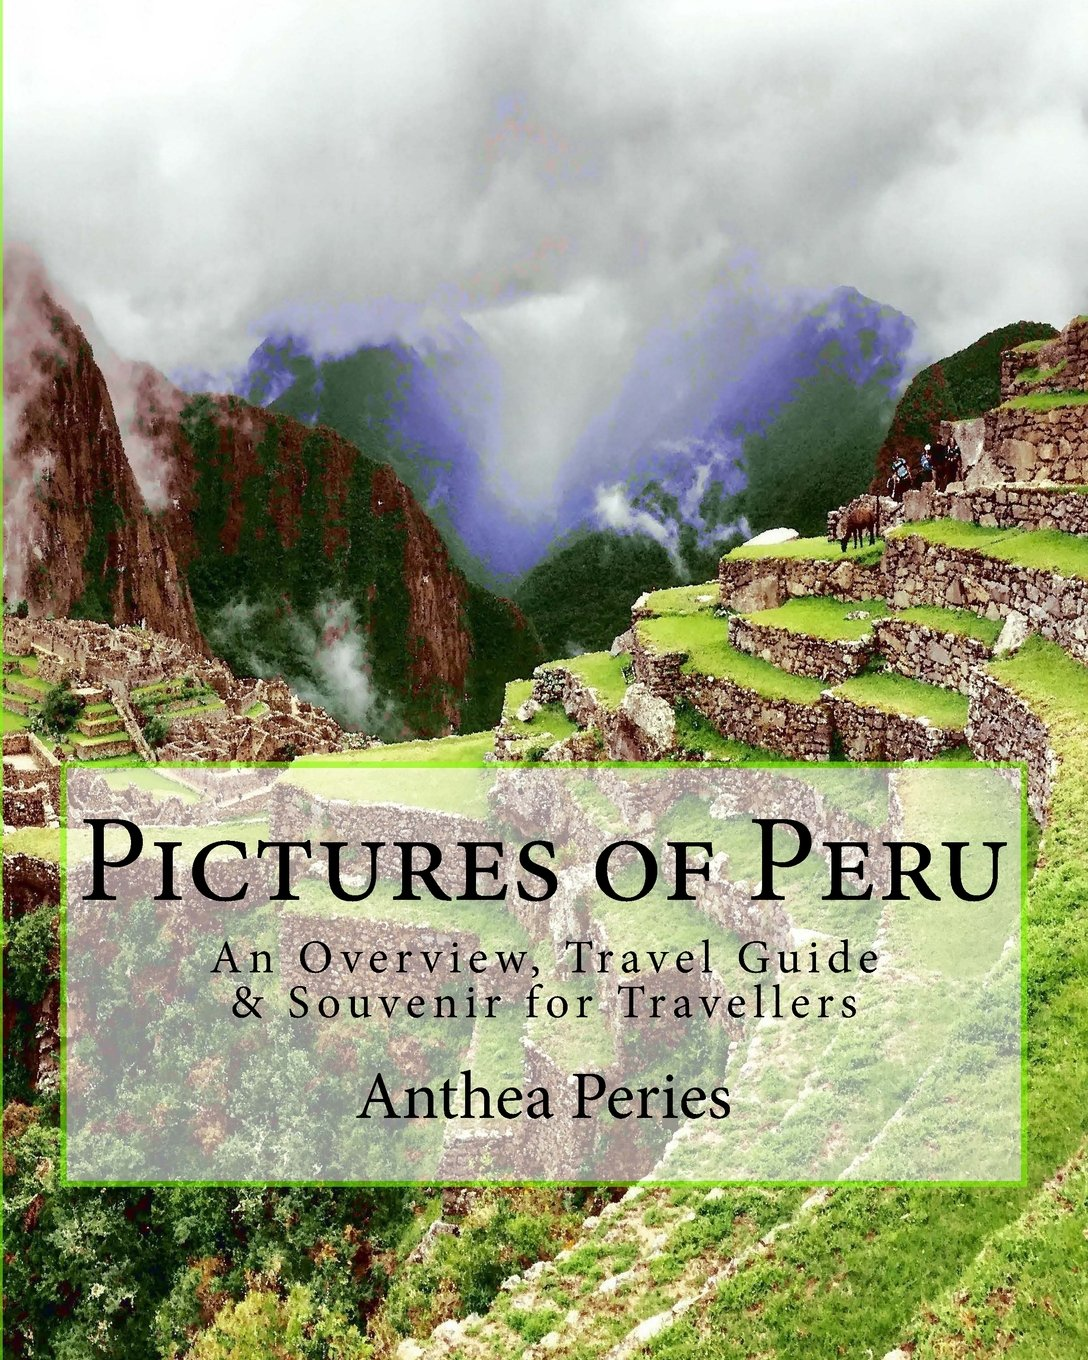 Pictures of Peru: An Overview, Travel Guide & Souvenir for Travellers (South America) ebook